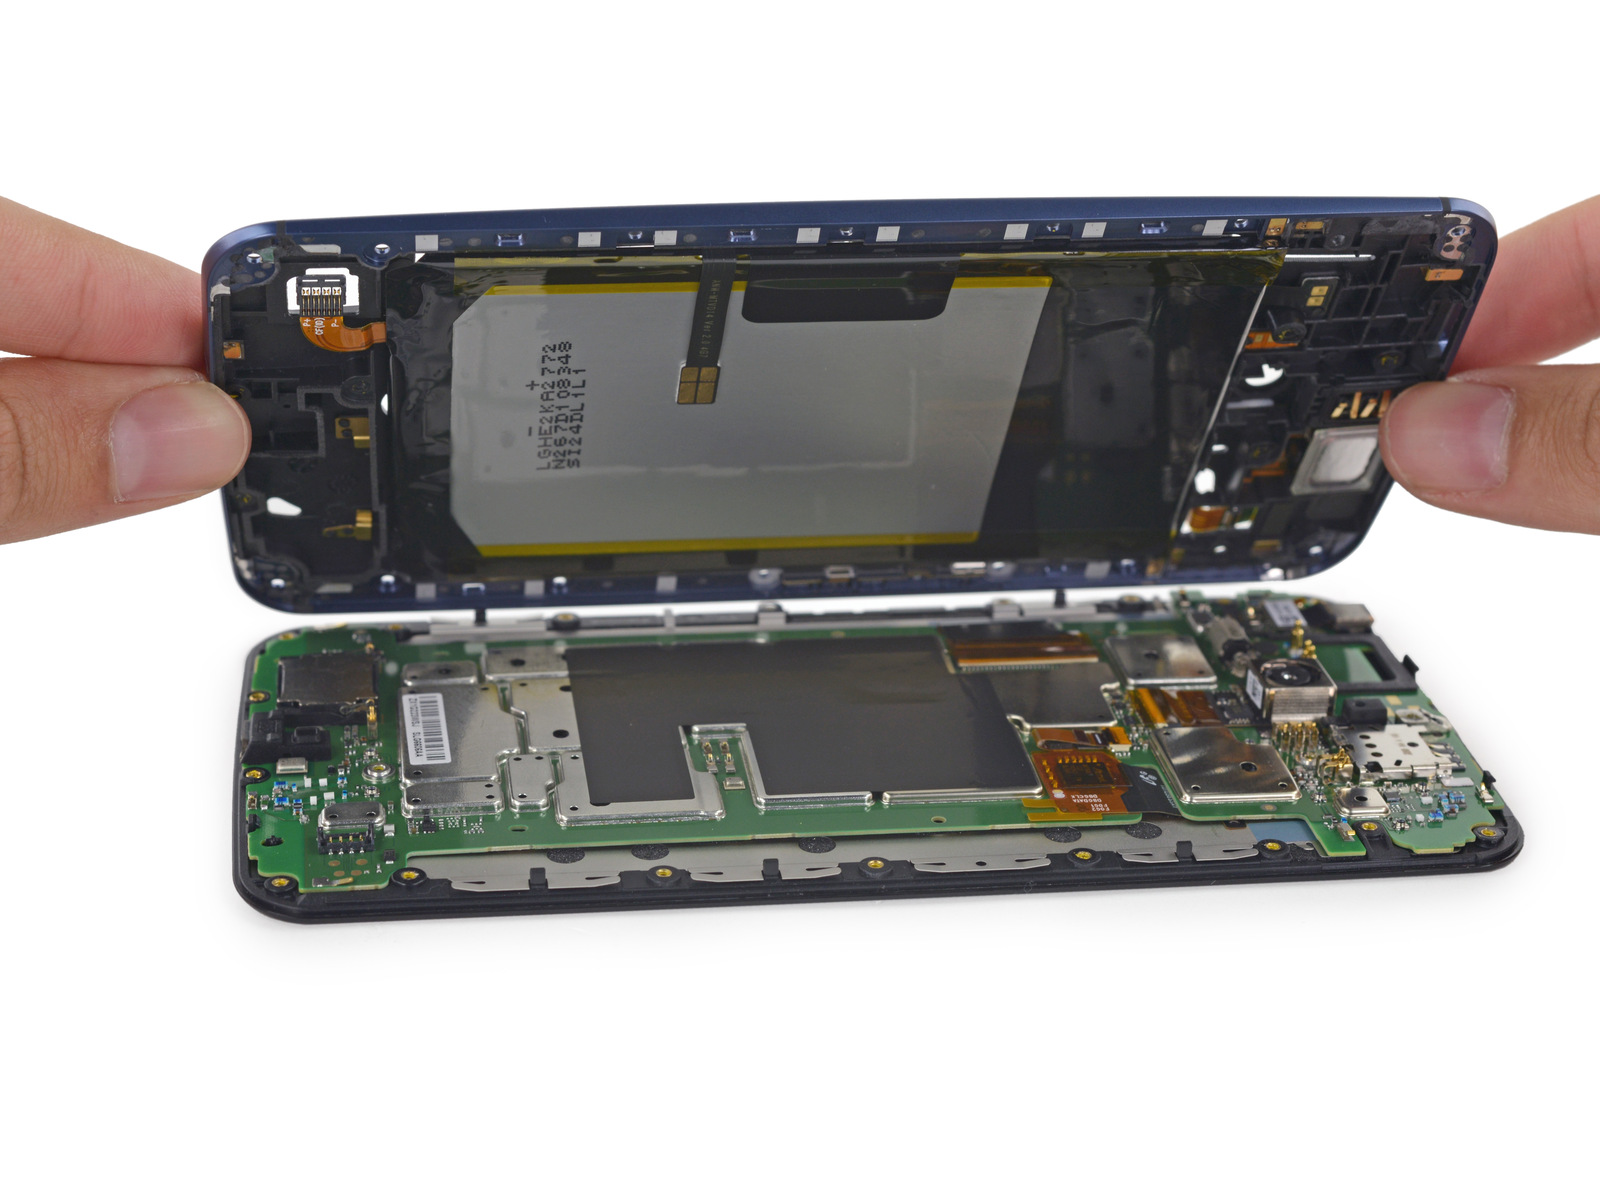 Nexus 6 teardown reveals solid